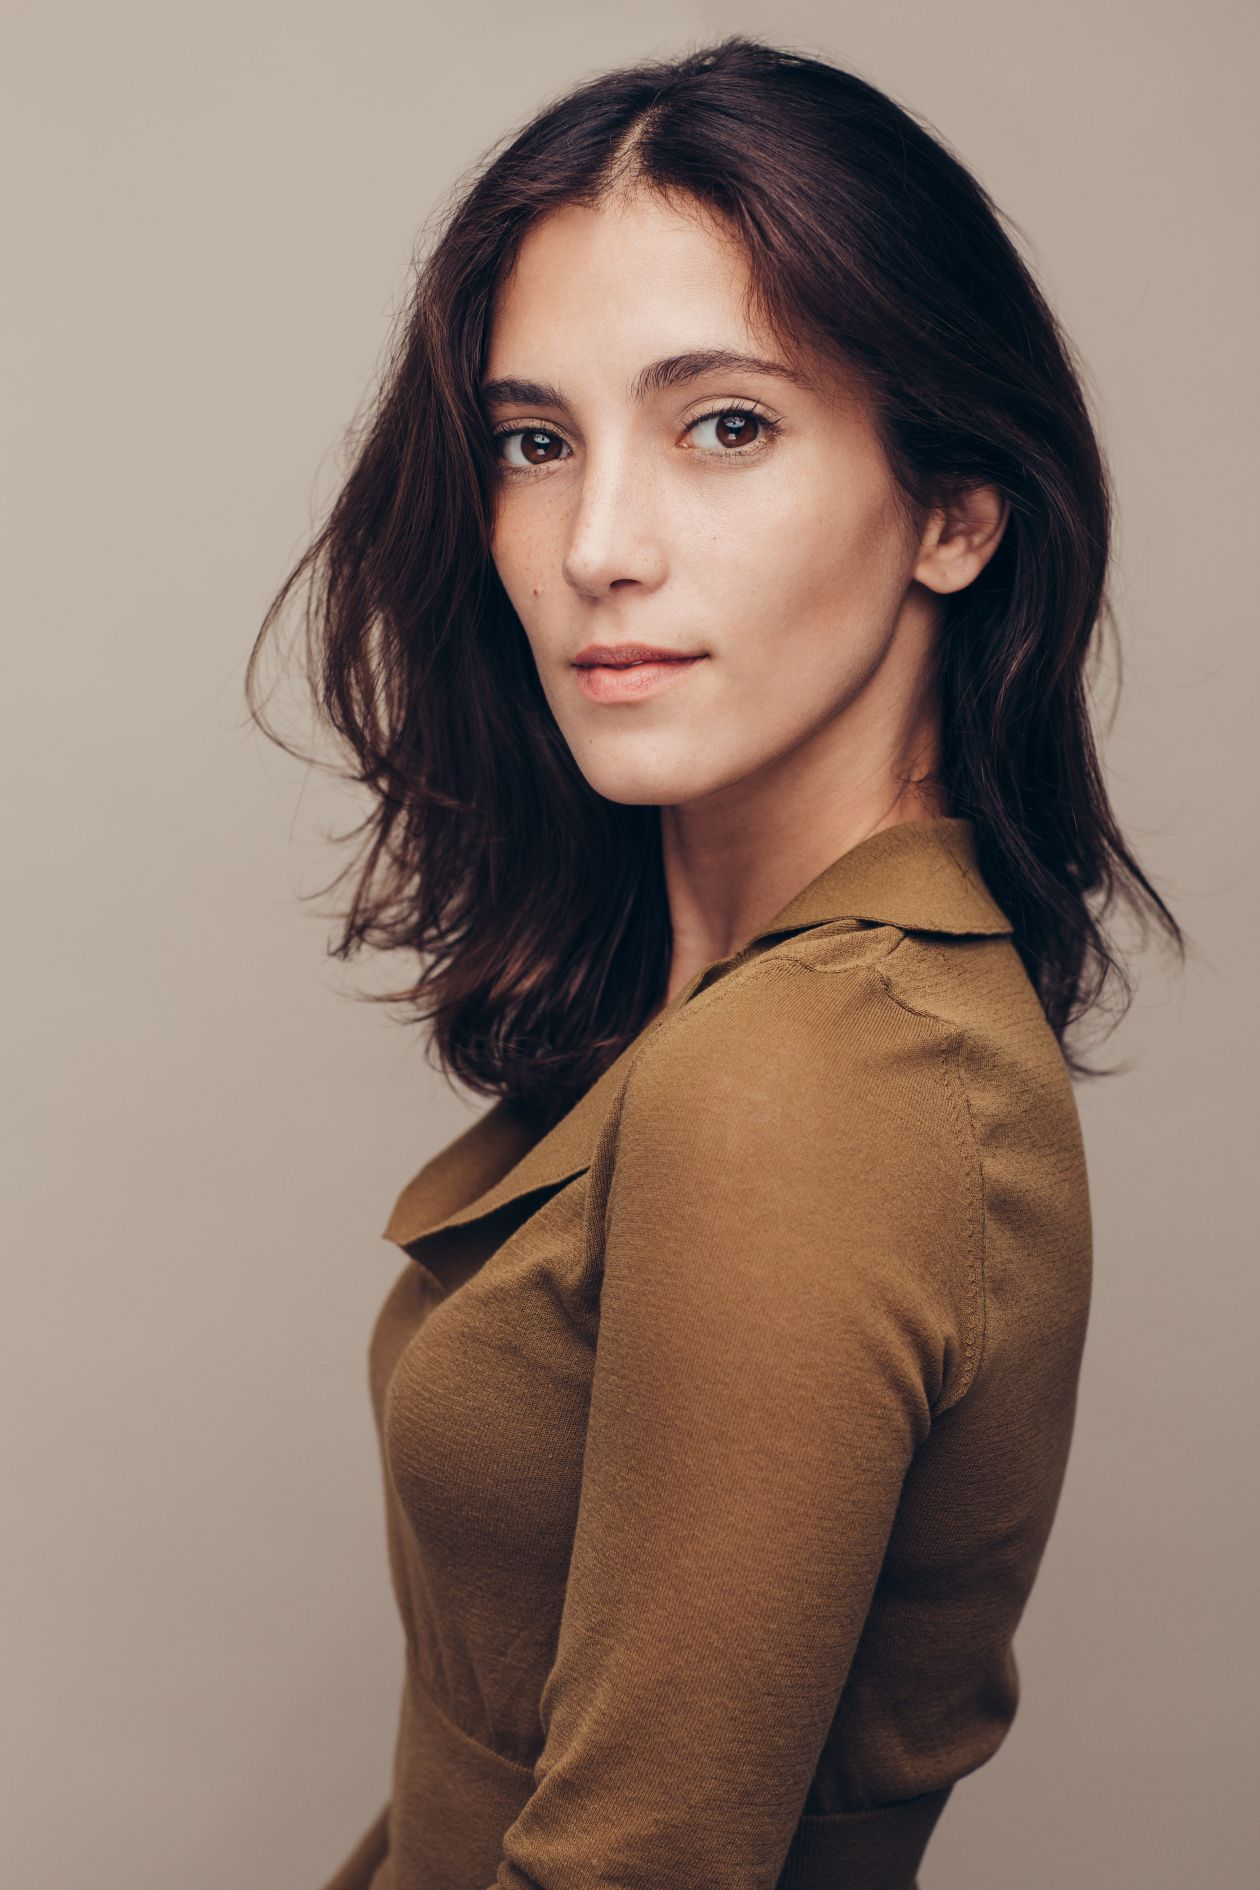 Sarah-Sofie Boussnina Photo by HEIN photography - © HEIN Photography